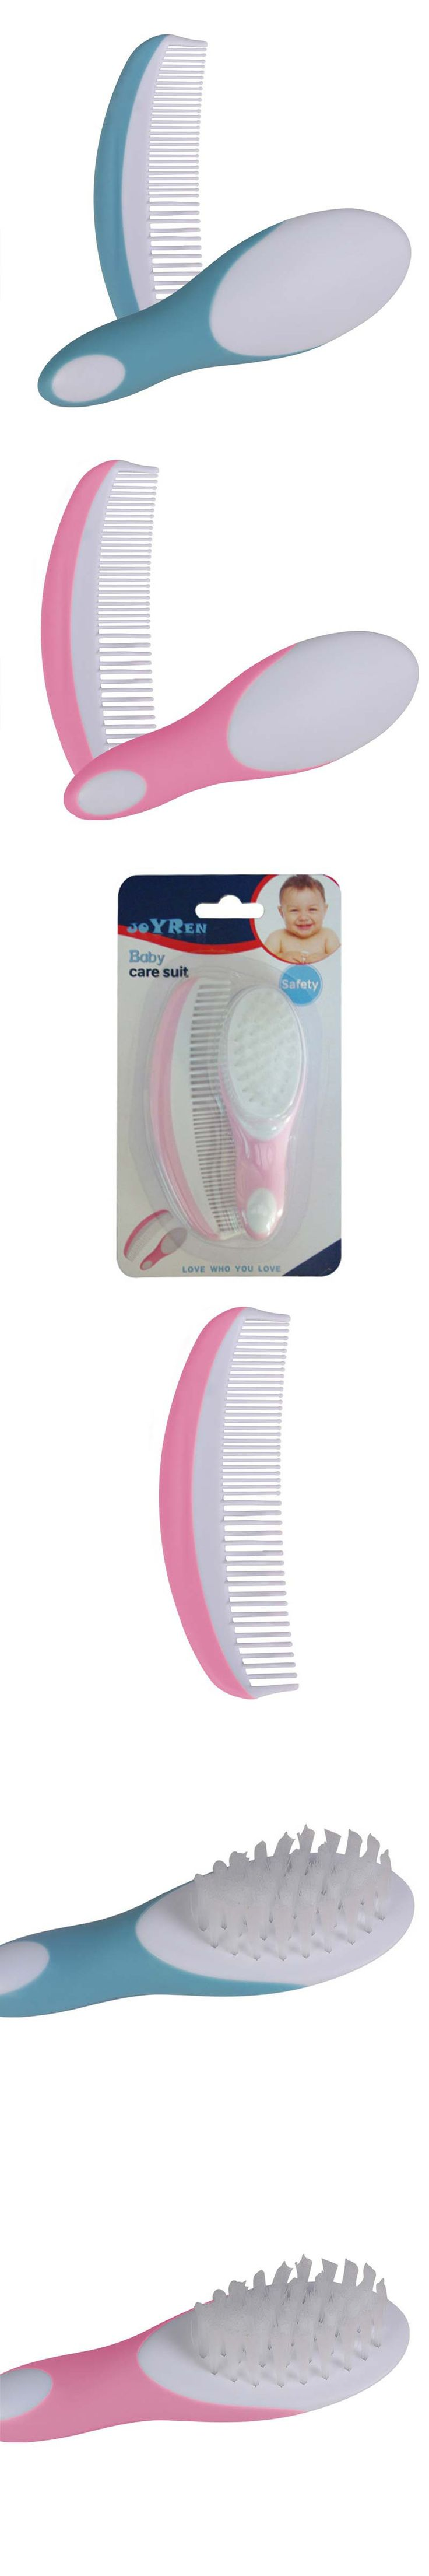 0-3 Years baby care sets Moon shape comb + Soft brush Easy to comb Environmentally friendly materials Safe design Baby essential